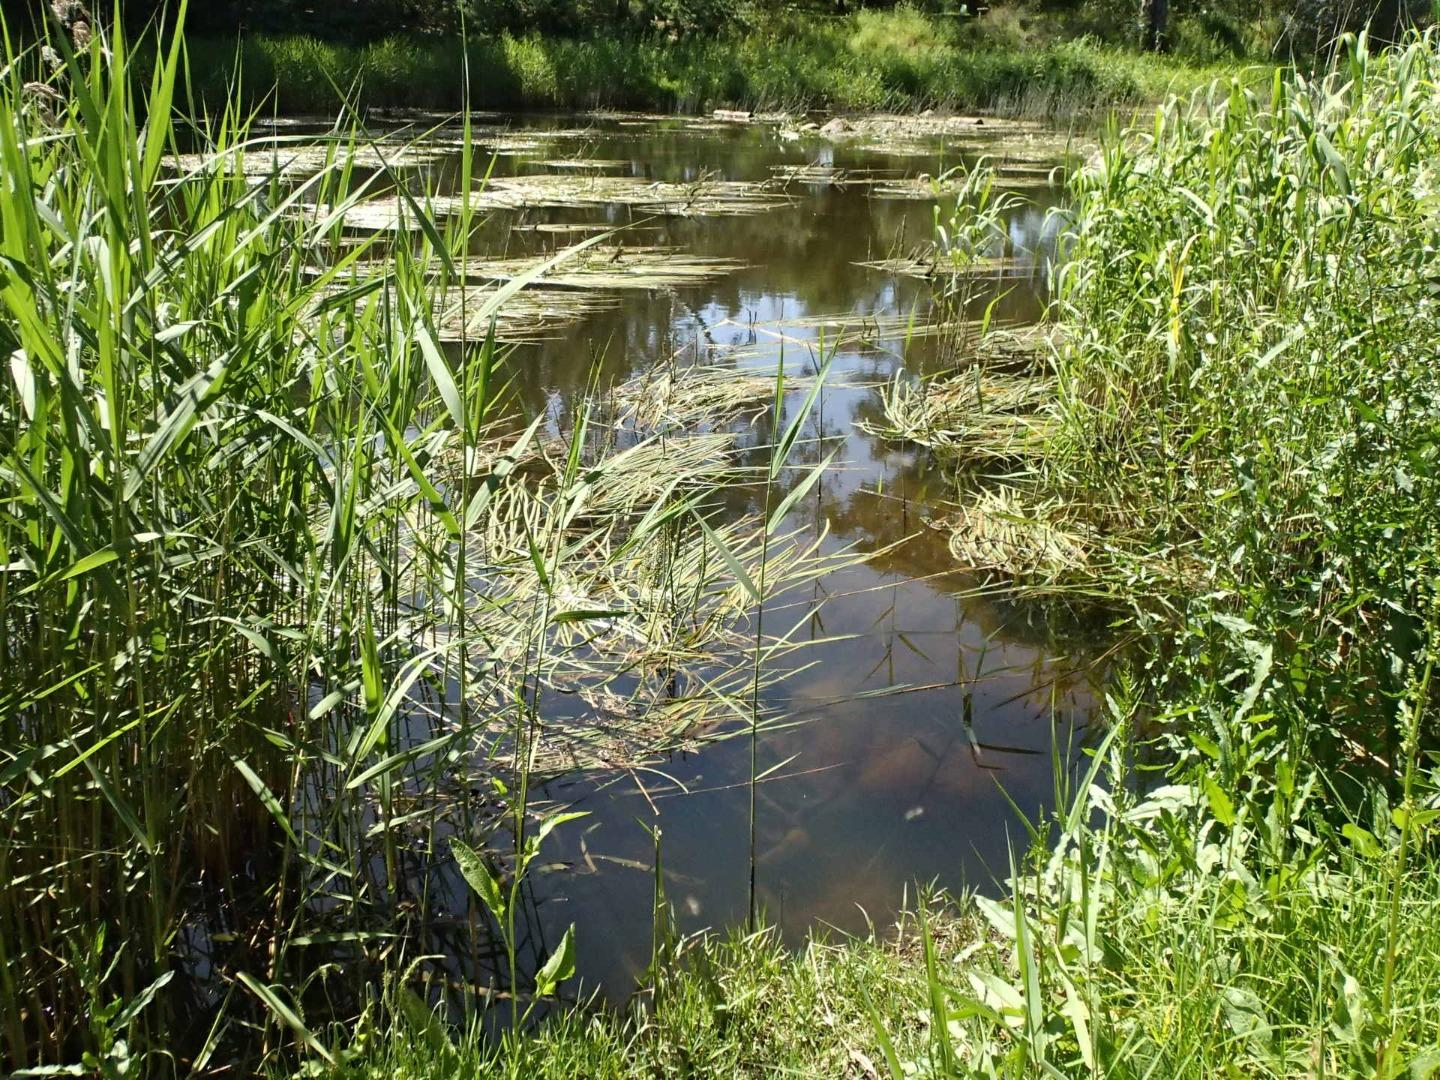 Water testing site, reed growth narrowing access point. Plenty of water ribbons.